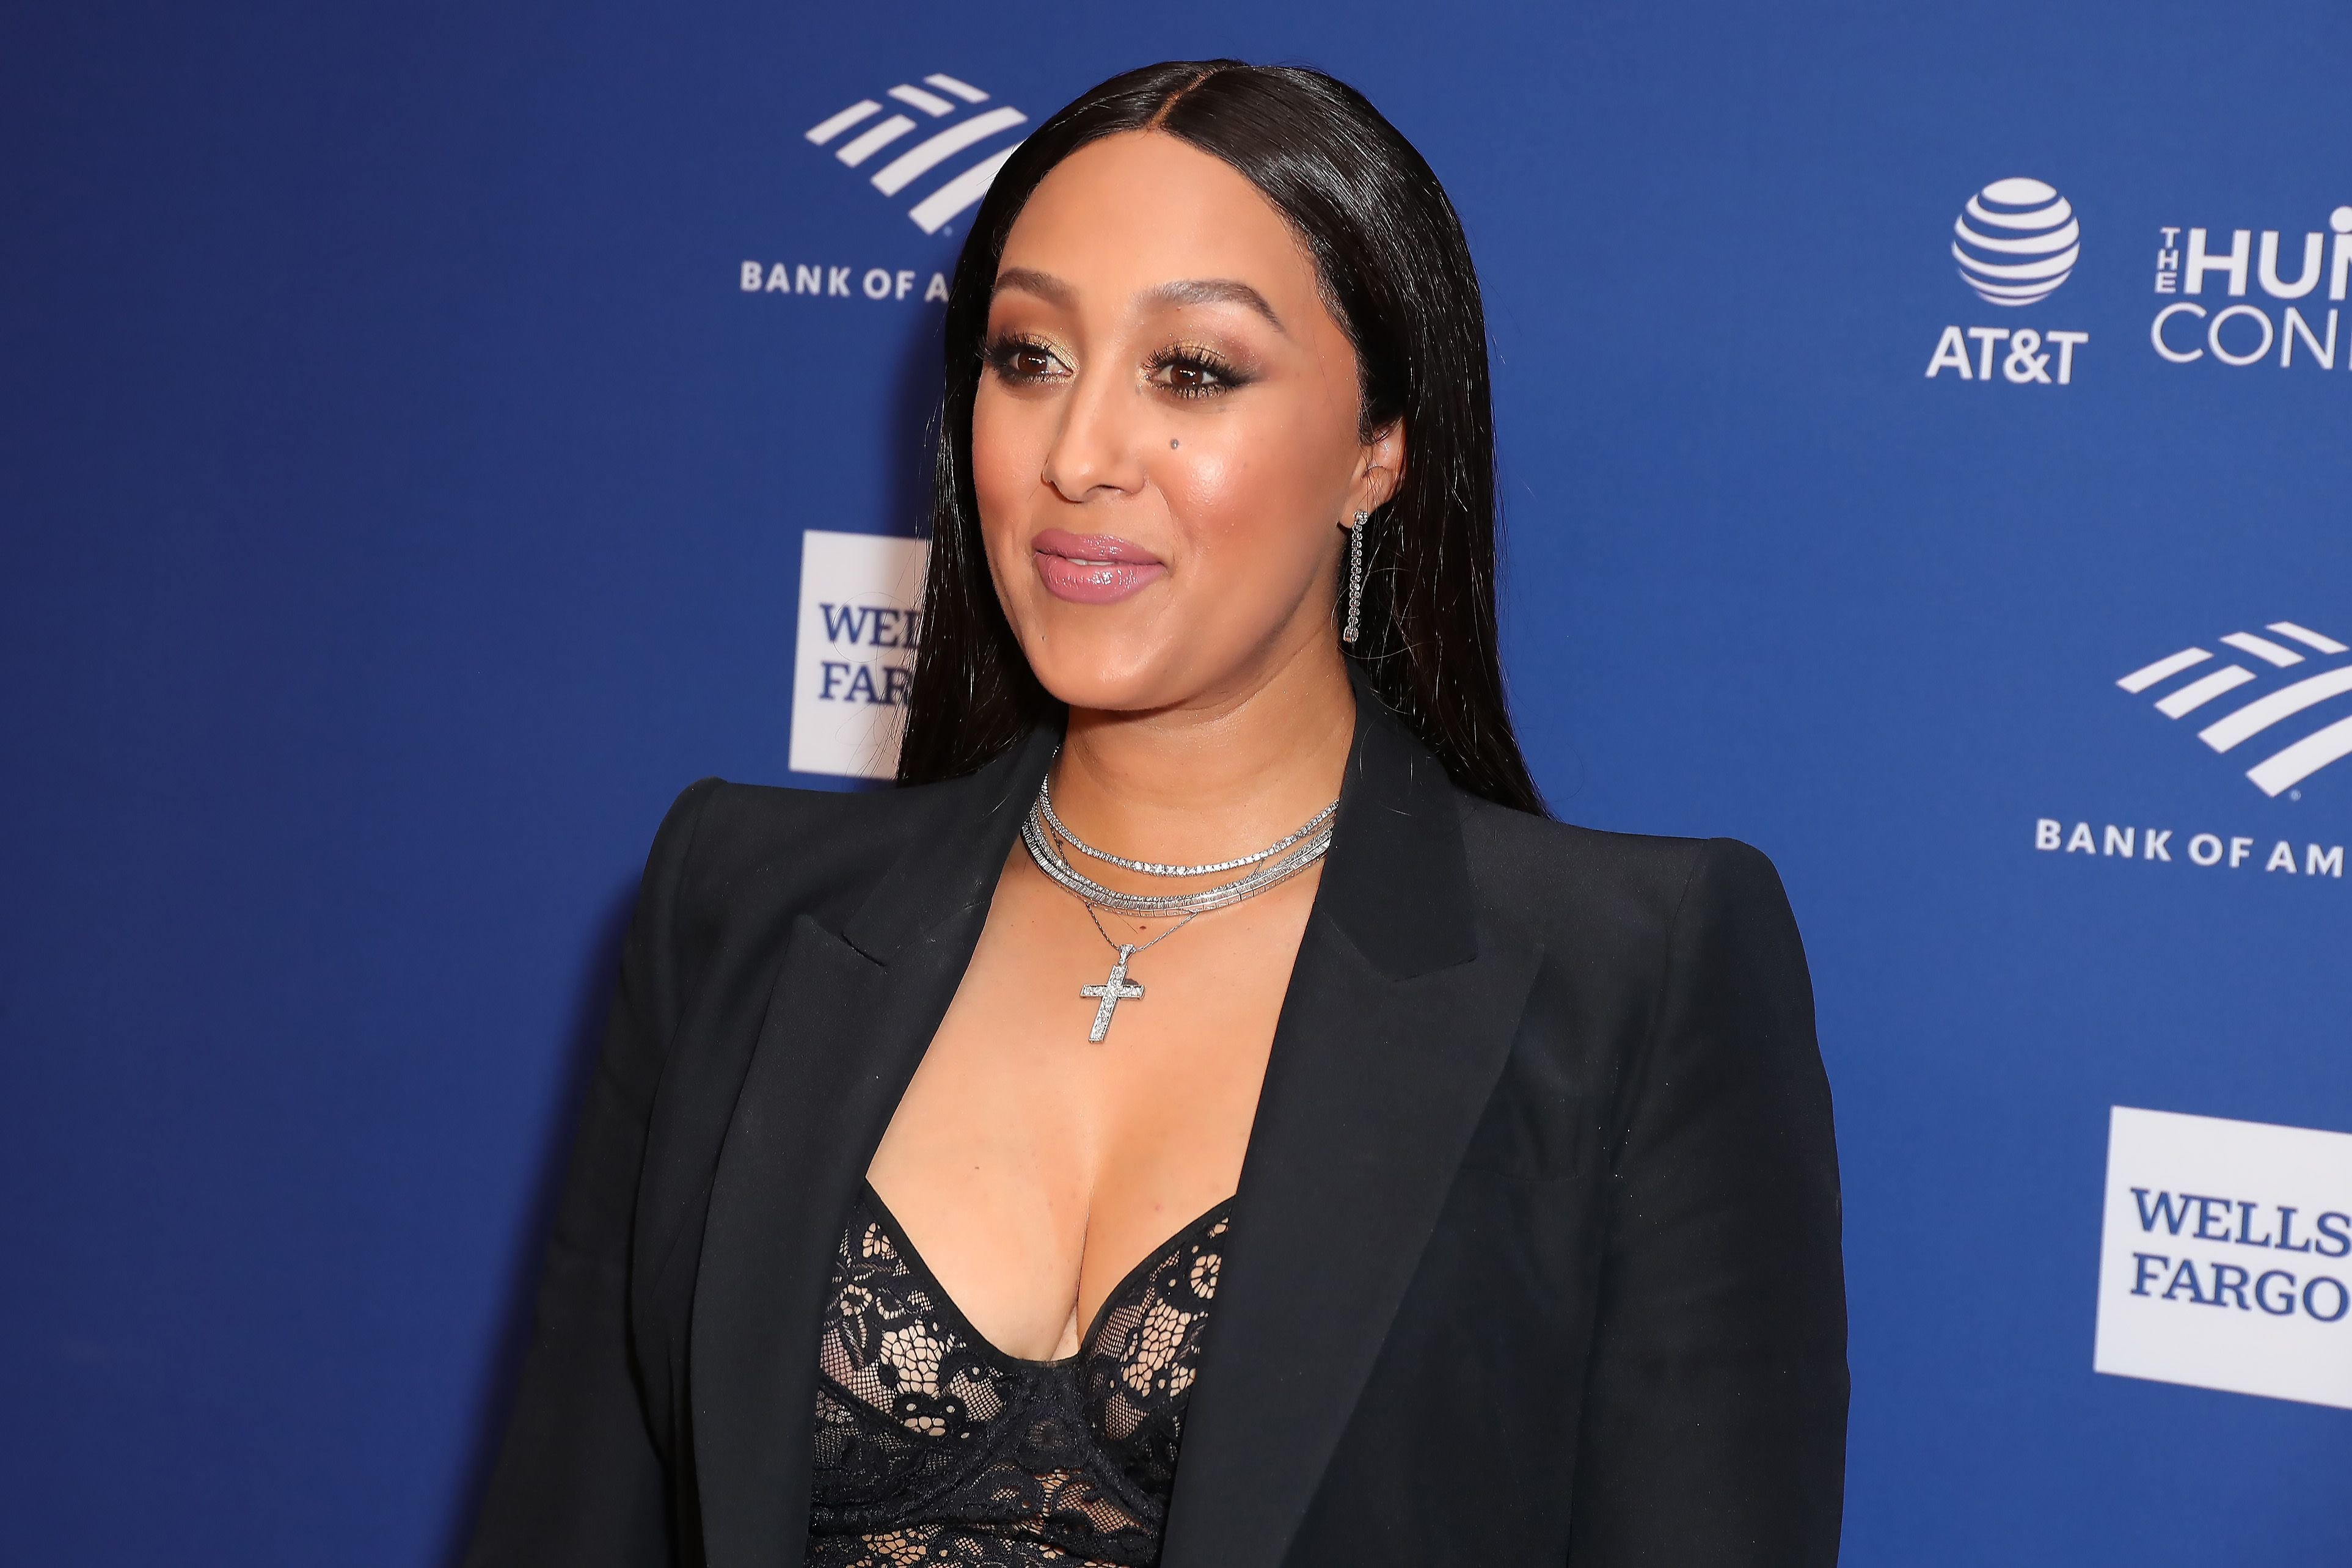 Tamera Mowry-Housley at the 51st NAACP Image Awards -non-televised awards dinner arrivals - on February 21, 2020 | Photo: Getty Images